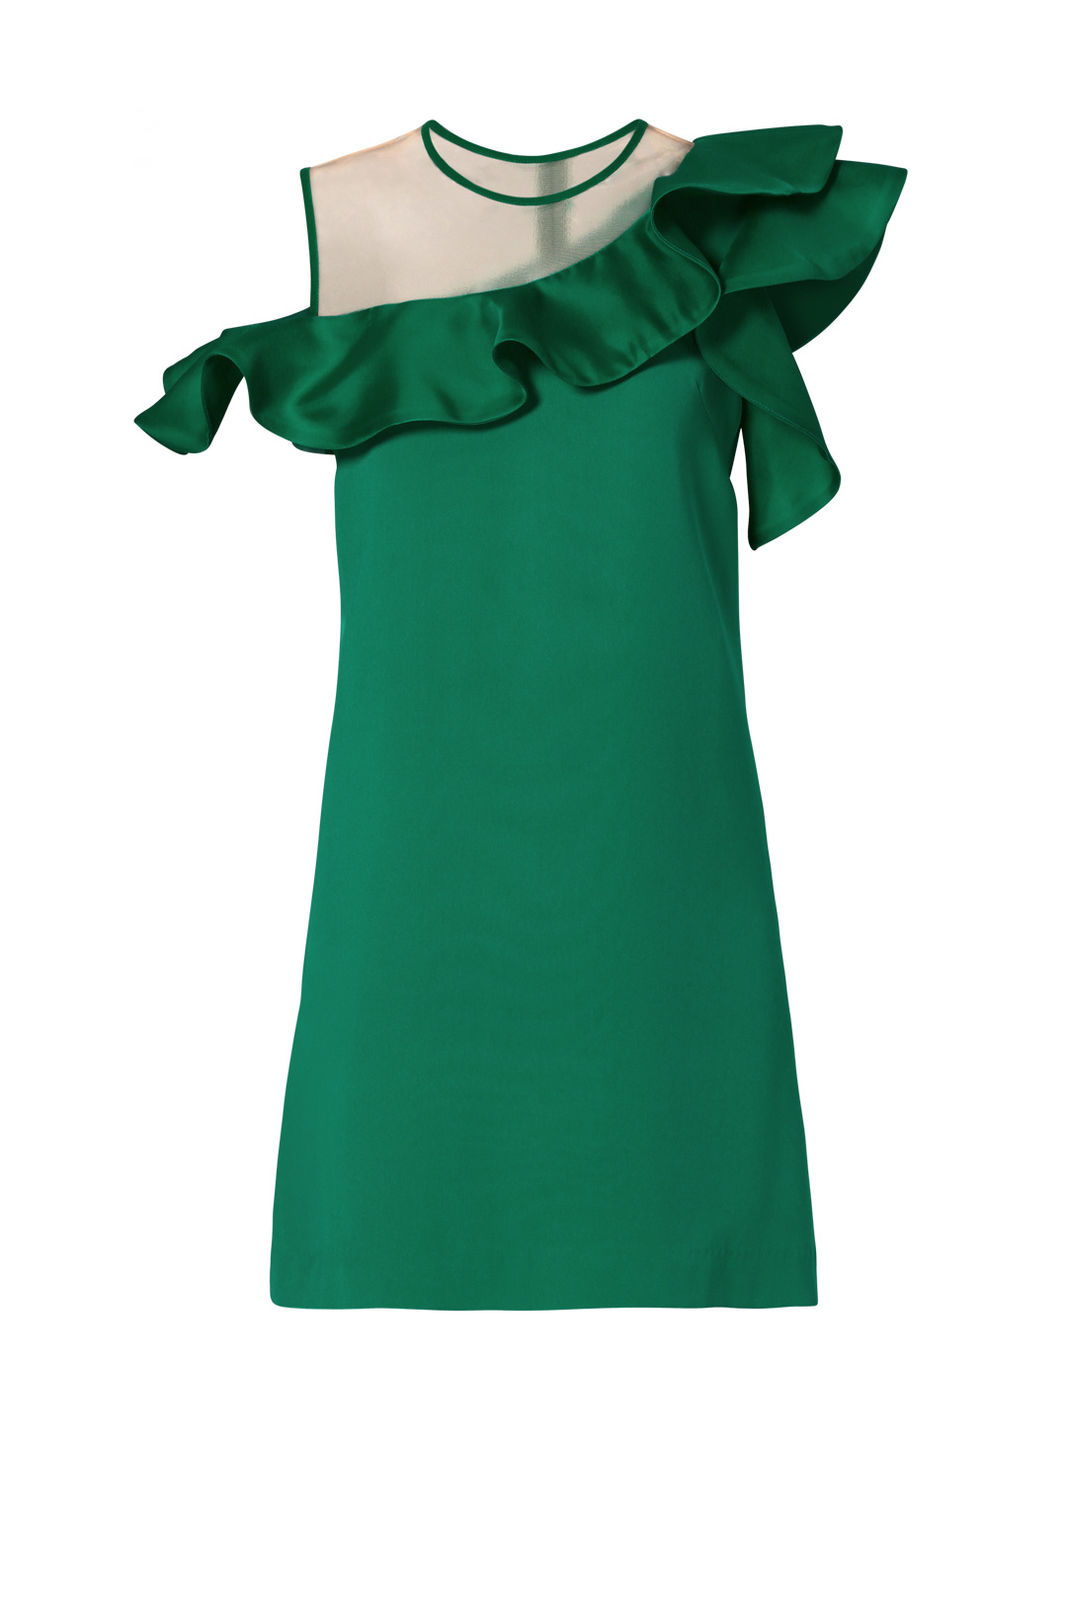 Nha Khanh Green Women's US Size 10 Ruffle-Trim Mesh Yoke Sheath Dress $530- #843